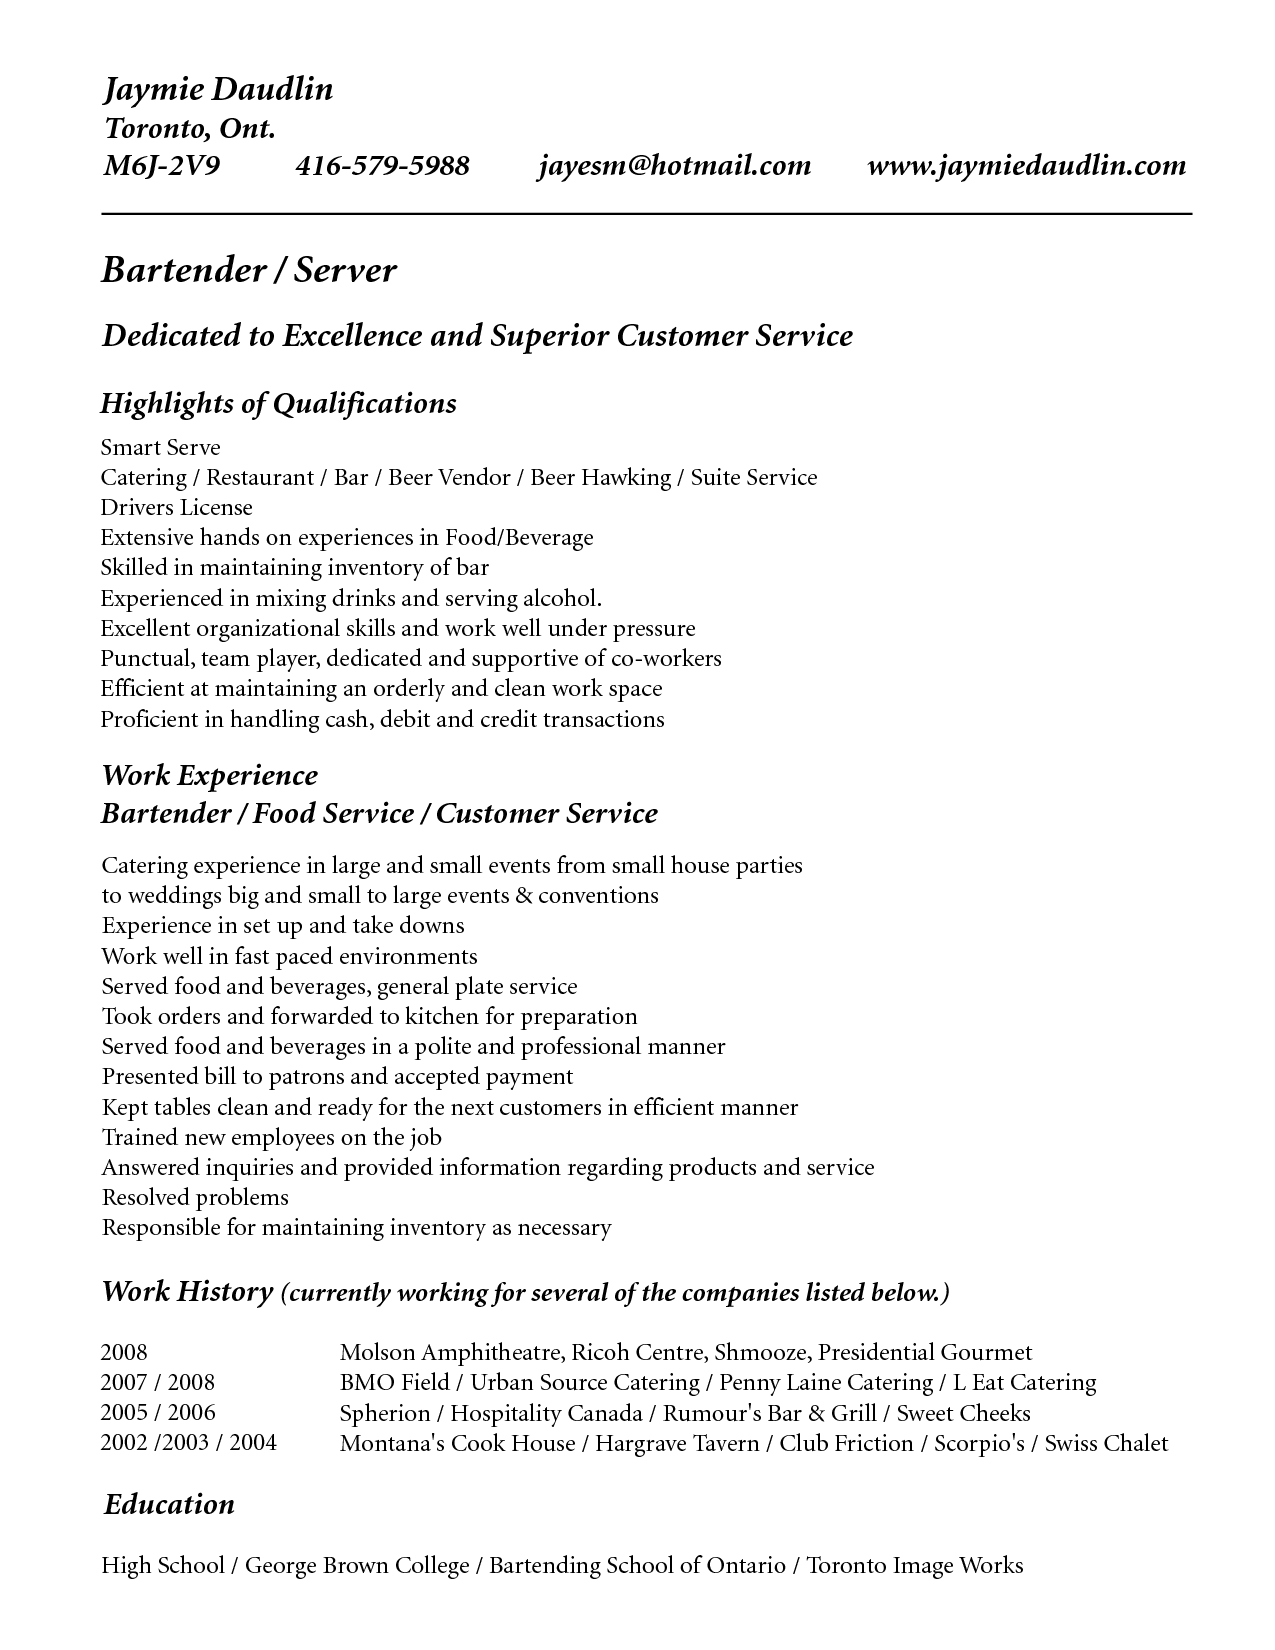 Career Builder Resume Template Resume Template For Bartender No Experience  Httpwww